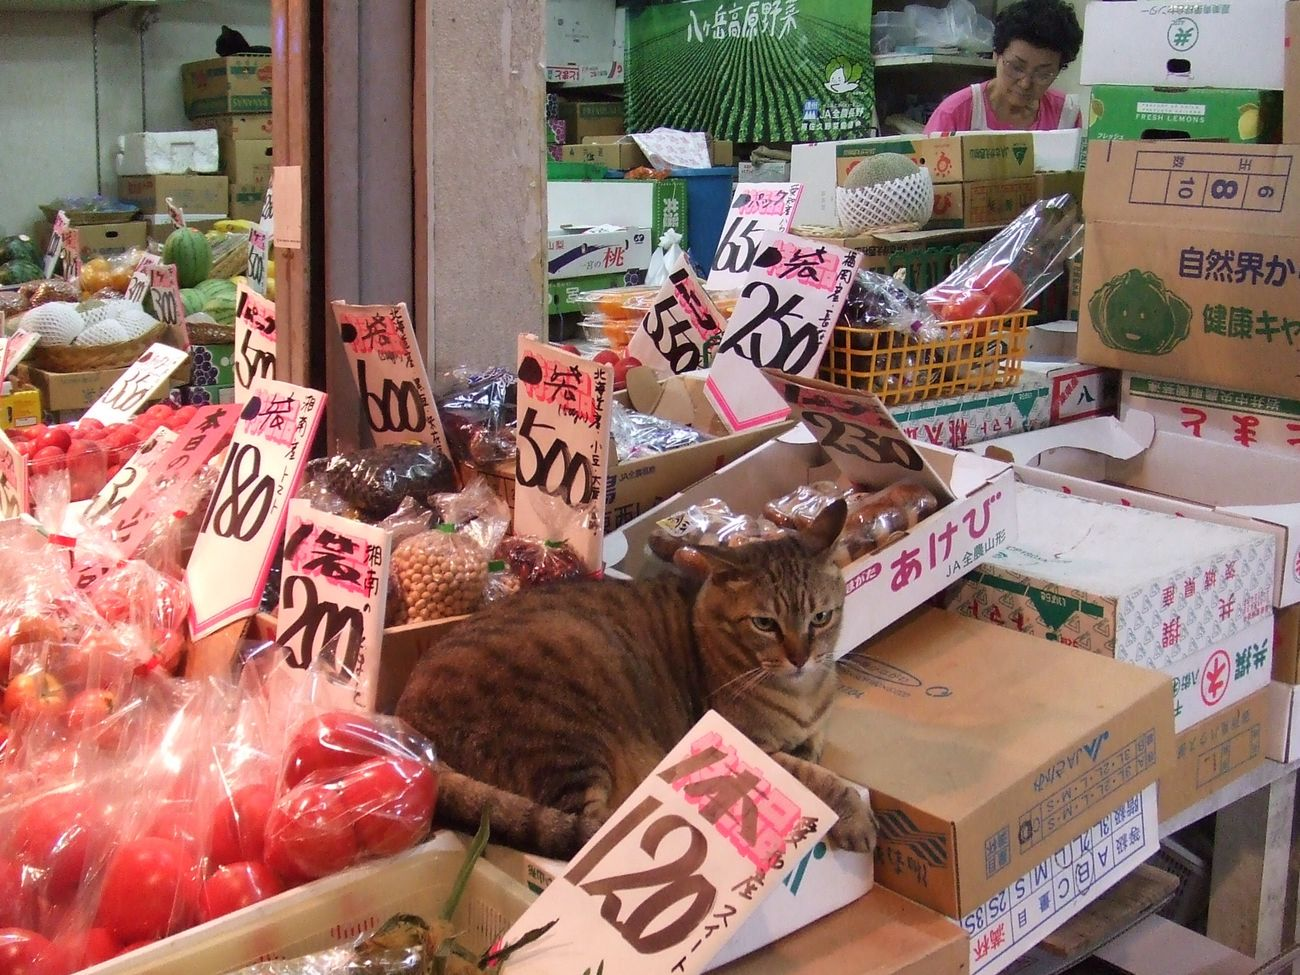 営業部長 2 sales manager cat Market Retail  Market Stall For Sale Price Tag Day Food Store Number Sales Manager One Animal Animal Themes Cat Cat♡ Greengrocer Owner What Do You Want? In Japan